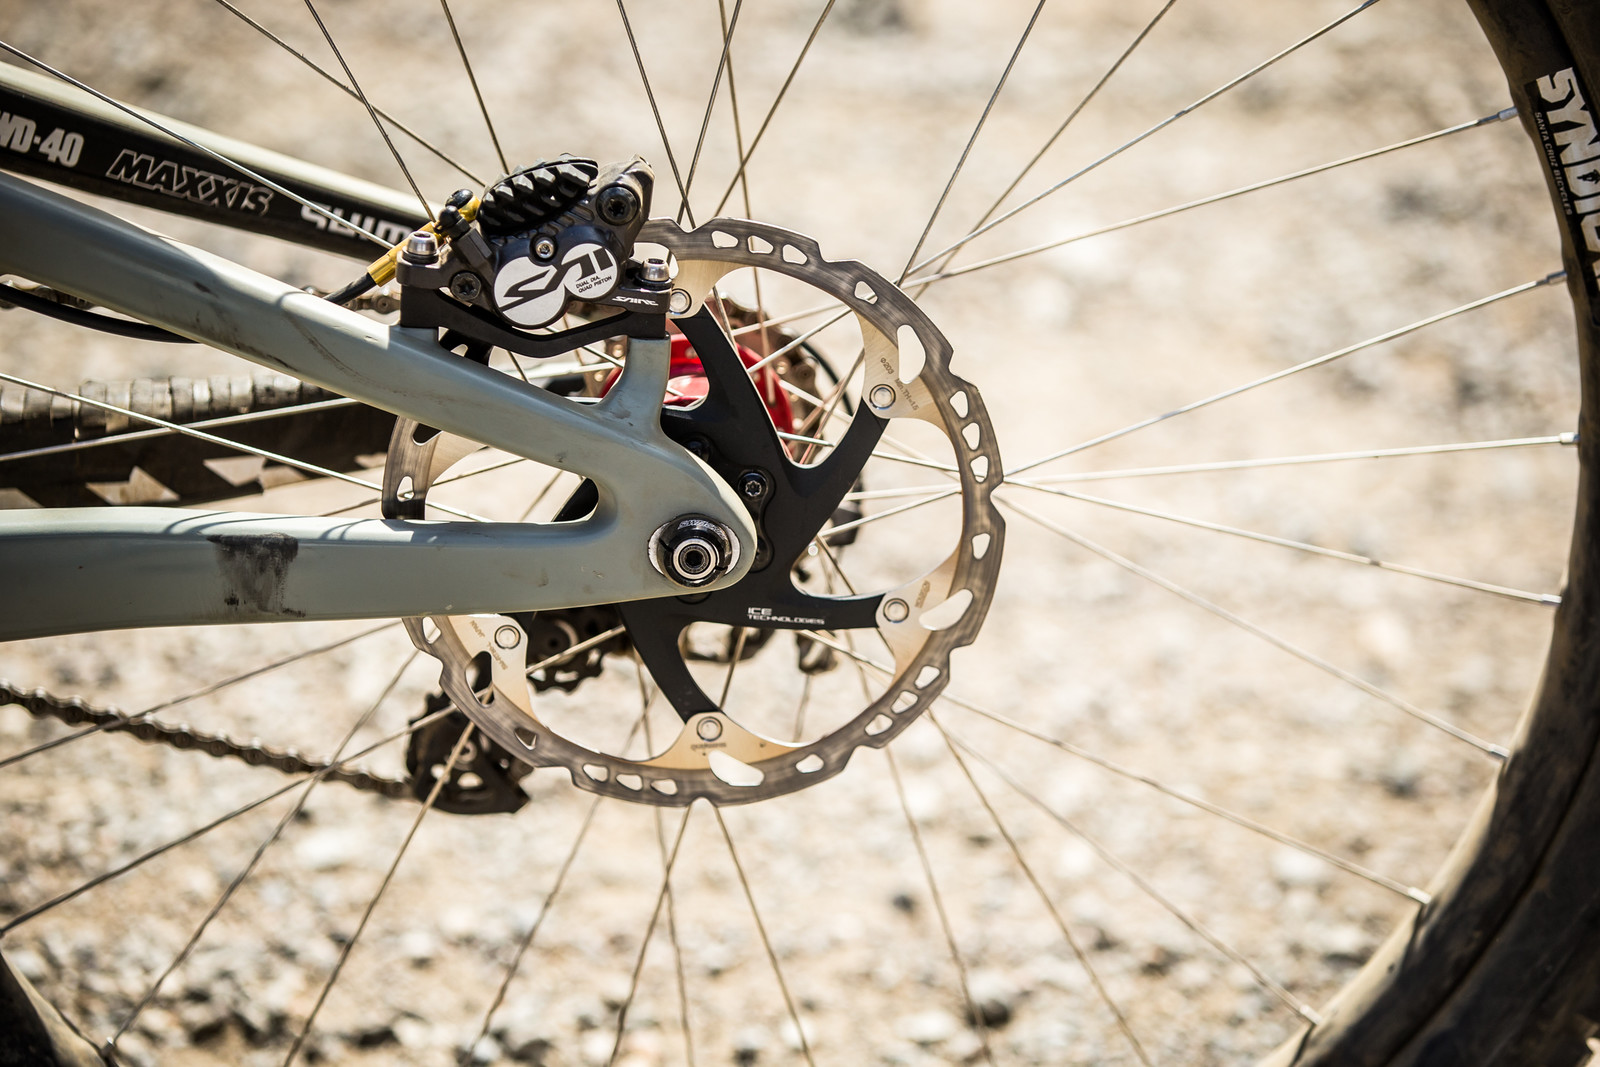 Shimano Saint Brakes and Subtle Chainstay Length Options - WINNING BIKE - Loris Vergier's Santa Cruz V10cc 29 - Mountain Biking Pictures - Vital MTB